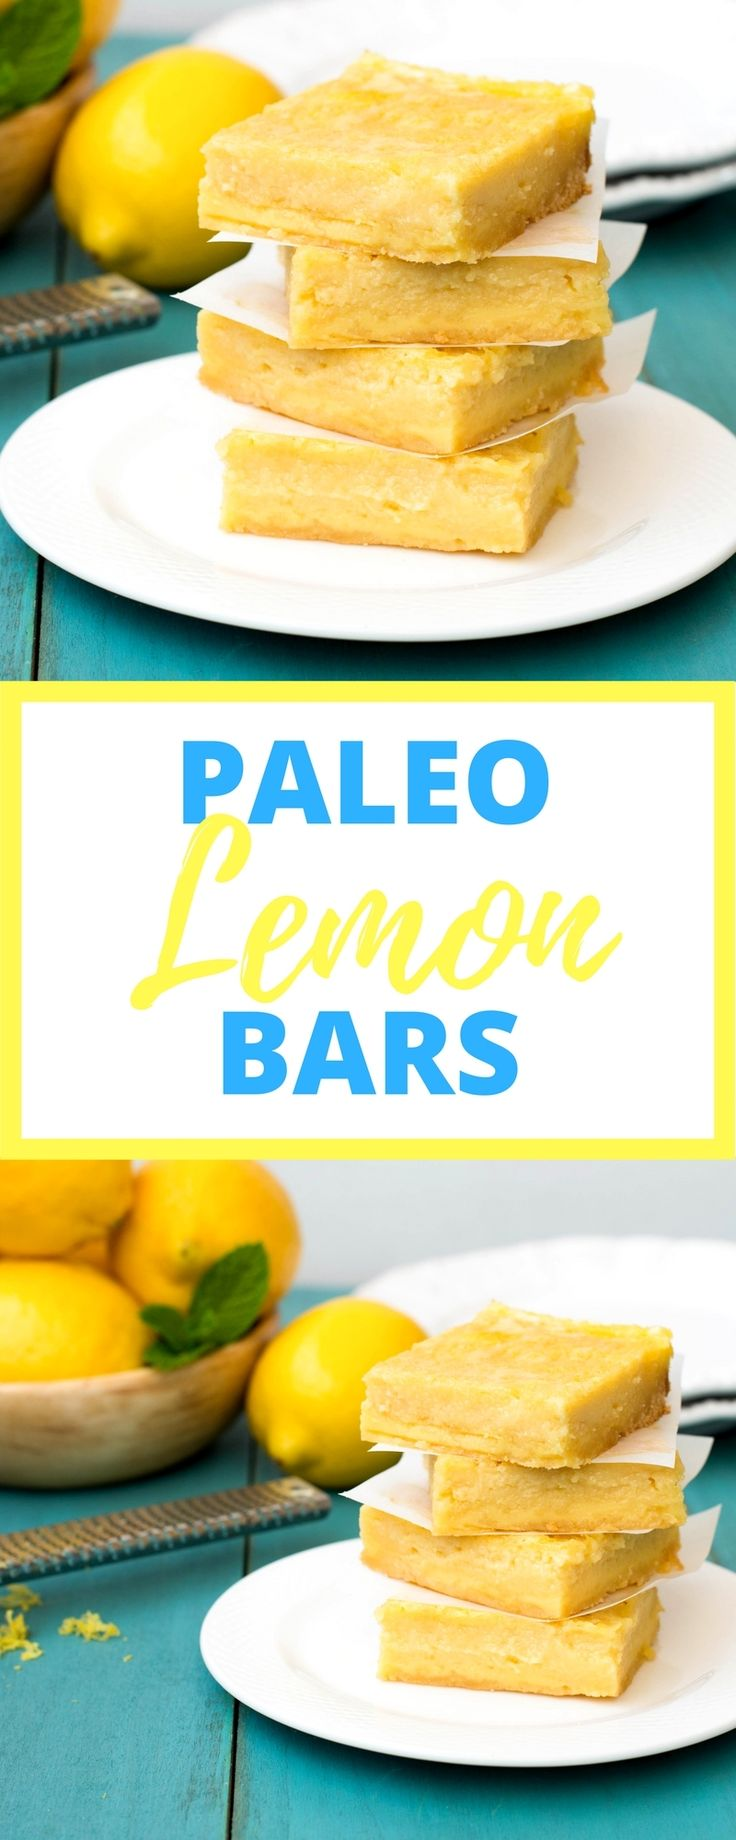 Paleo Lemon Bar recipe - Perfect dessert!